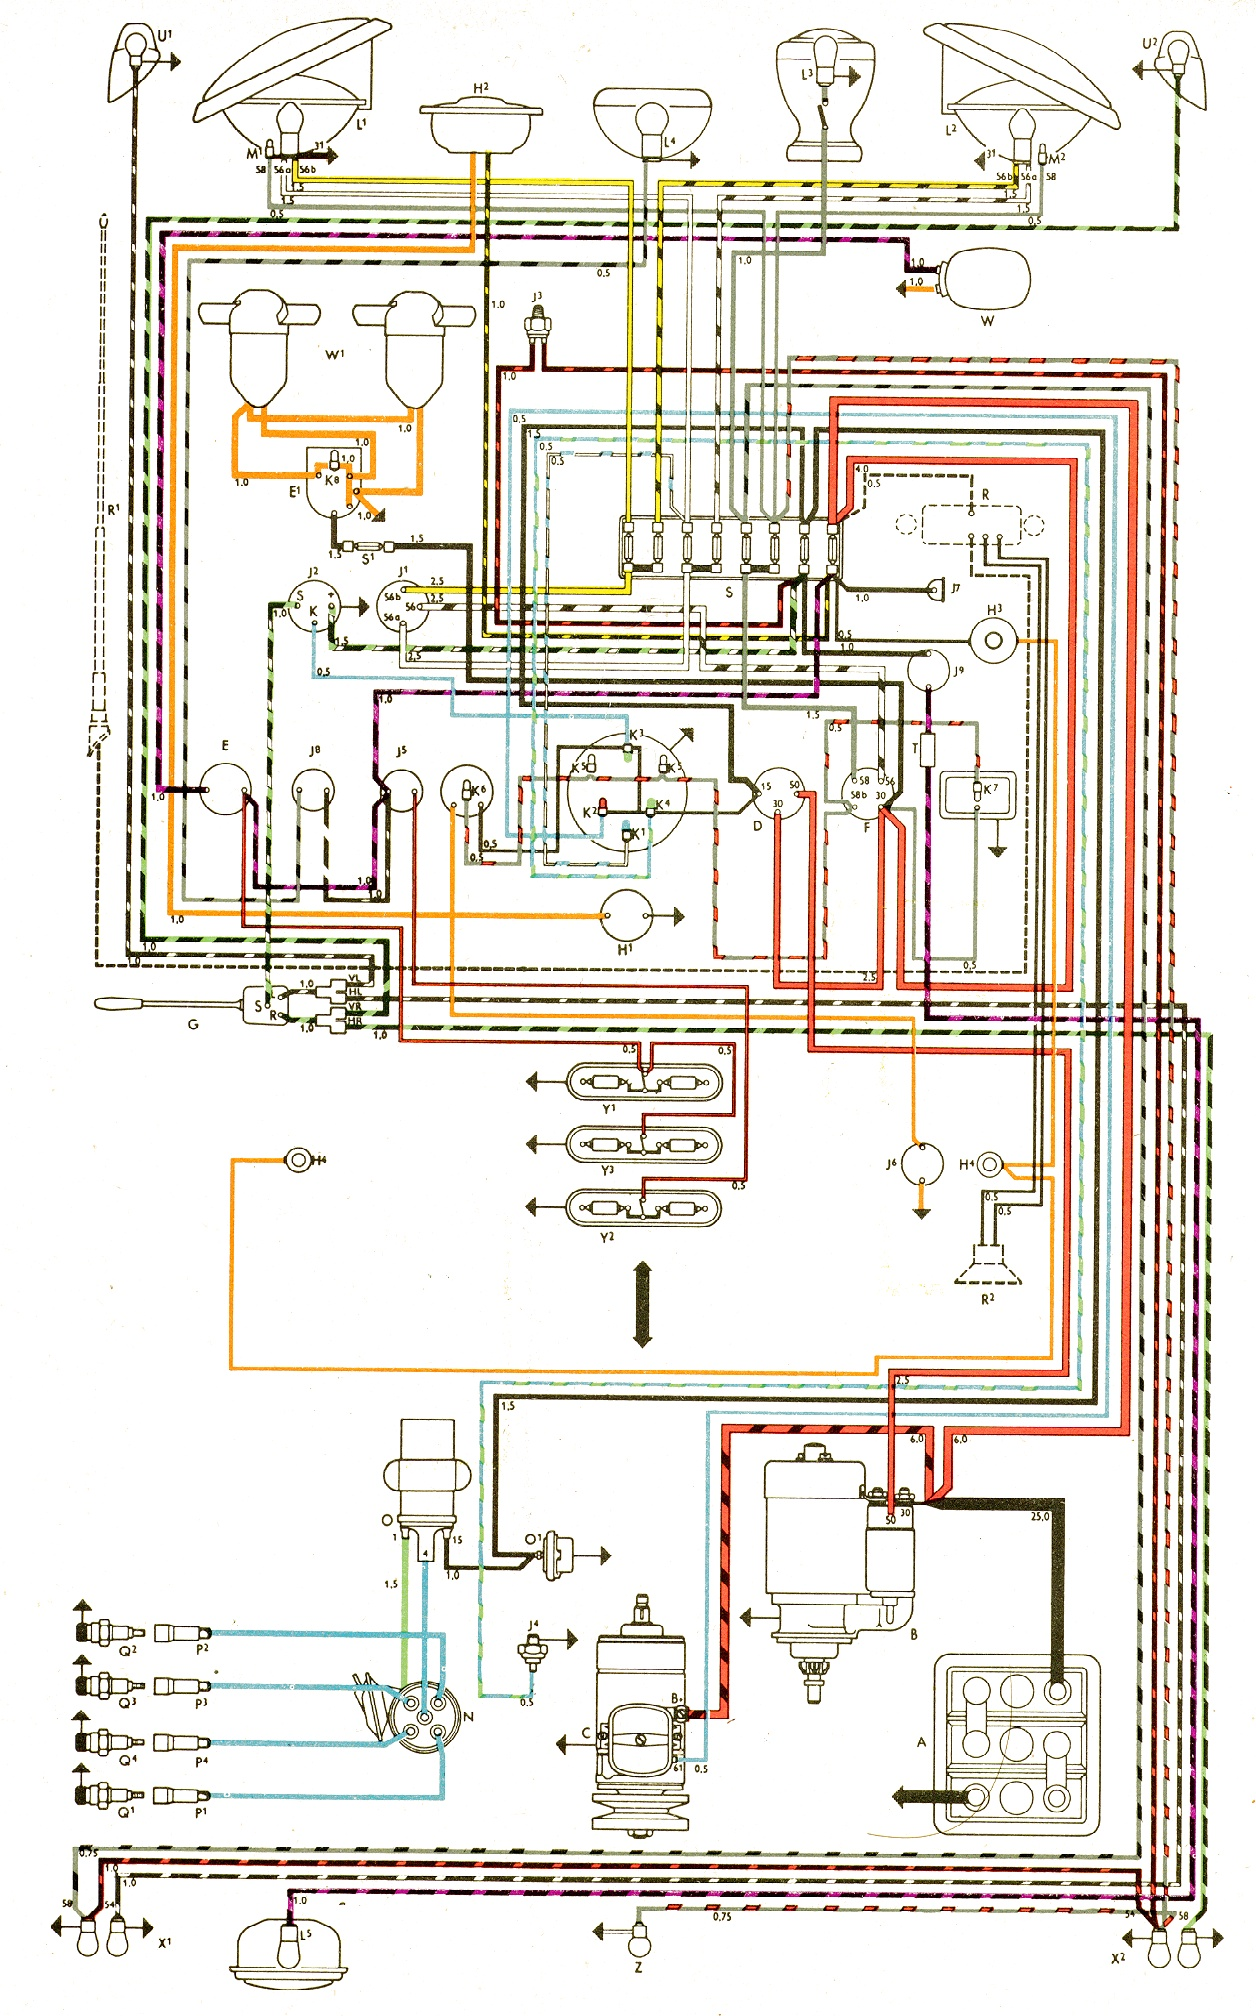 bus 62 vintagebus com vw bus (and other) wiring diagrams 1971 vw bus wiring diagram at nearapp.co